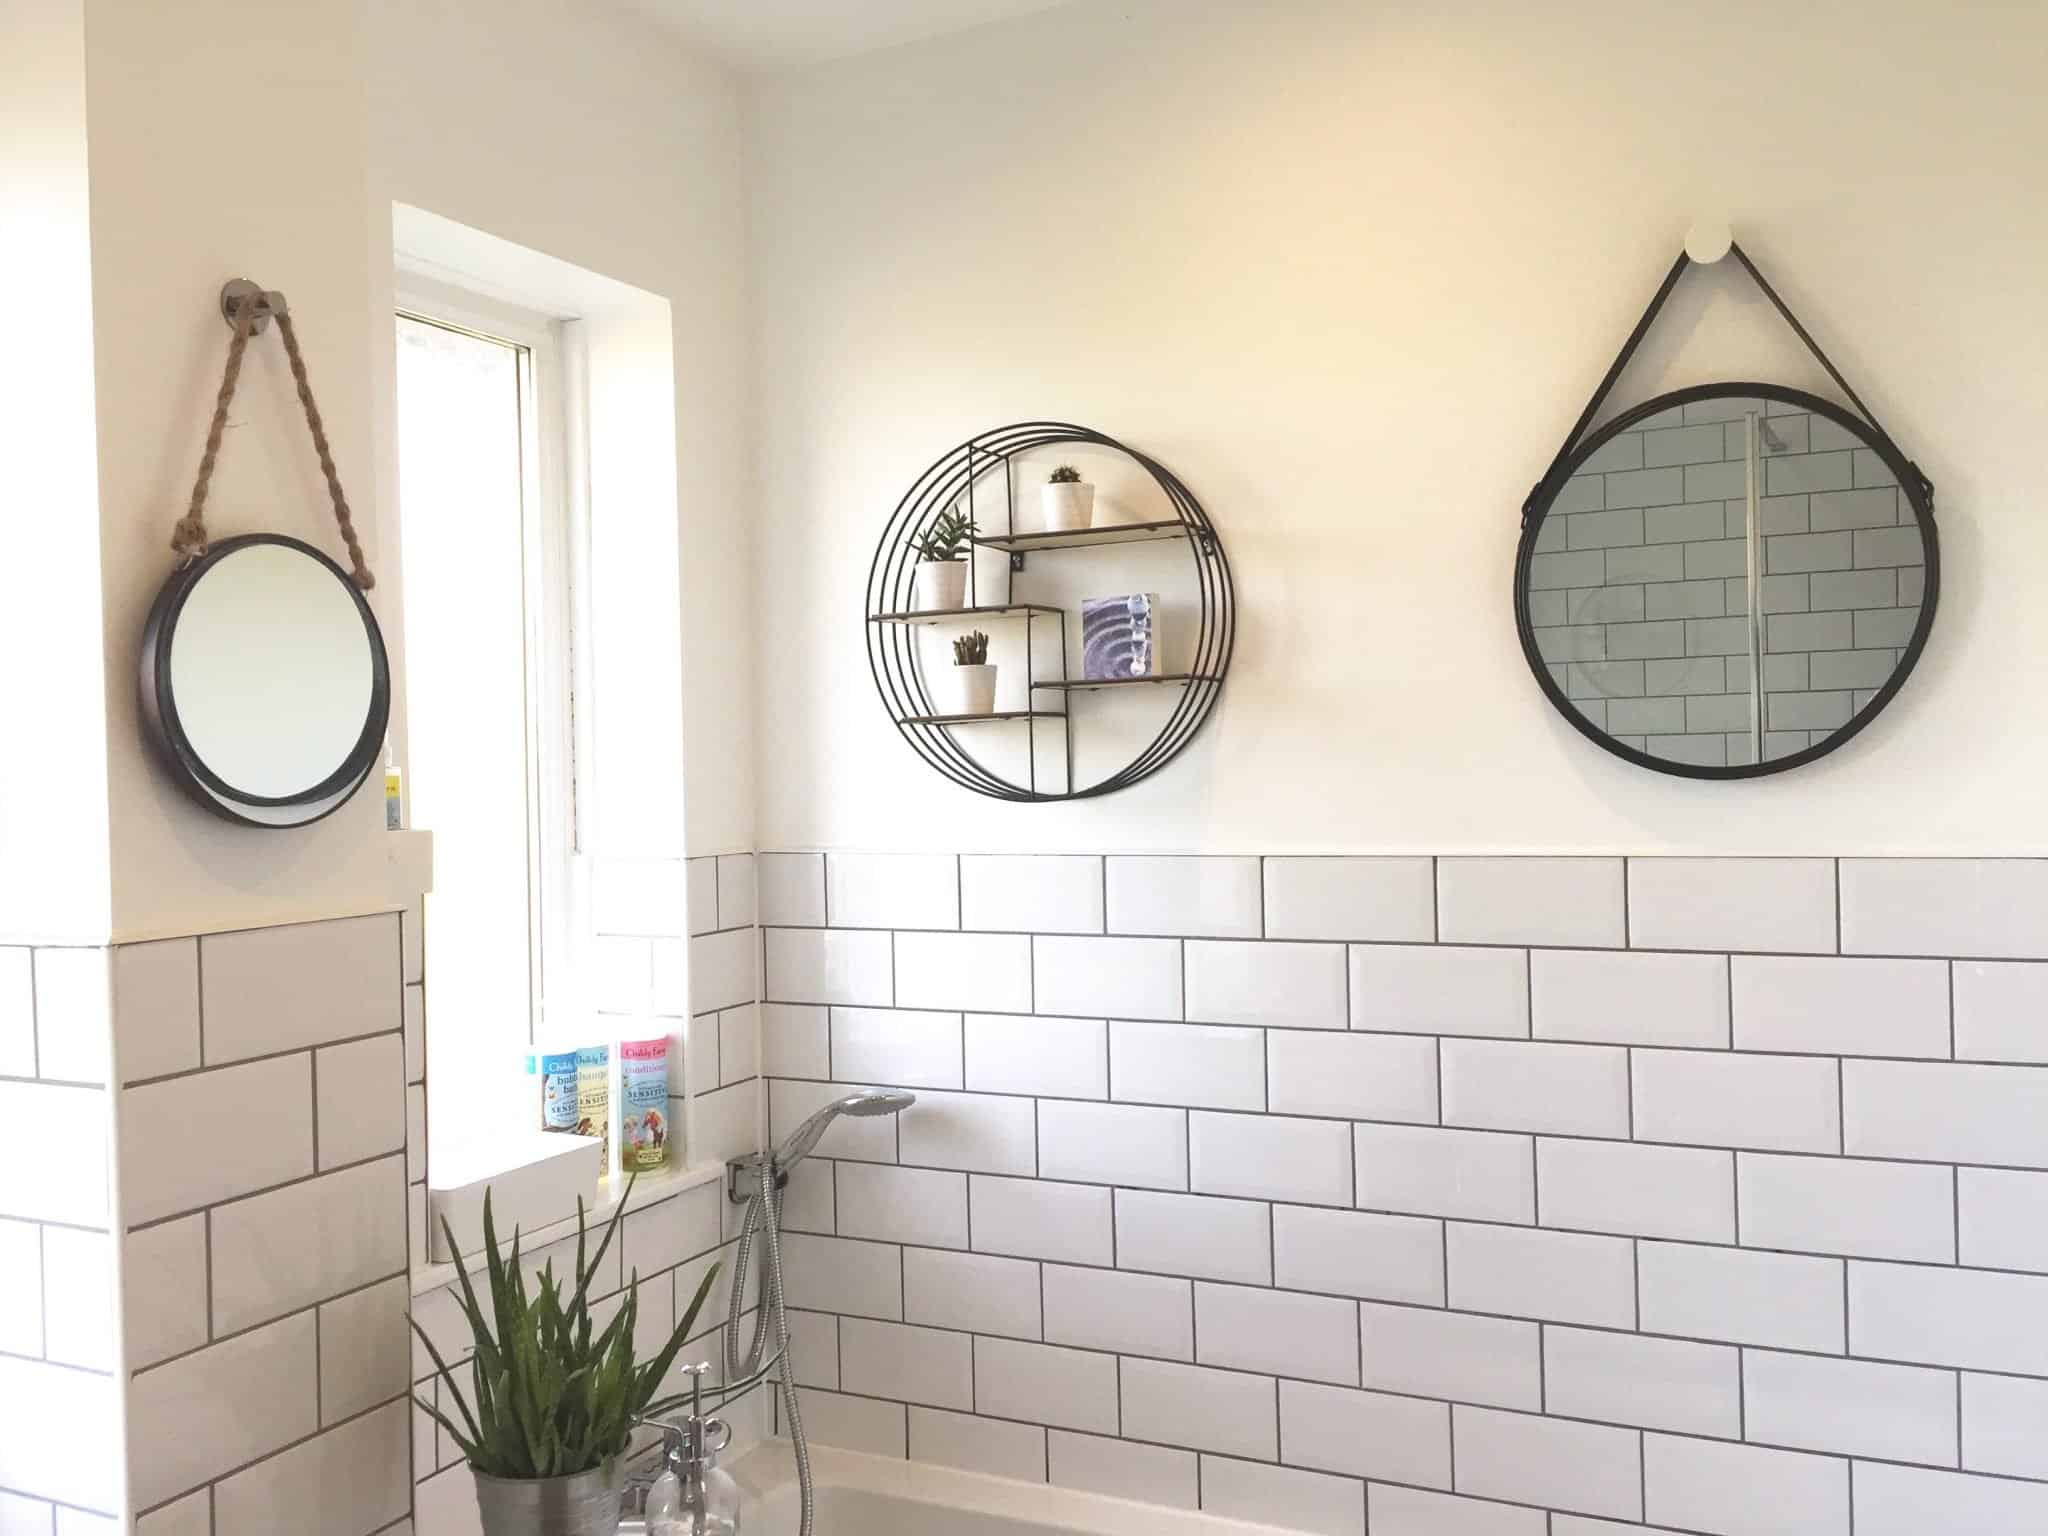 Circular black mirrors and shelving above a bath in a monochrome bathroom